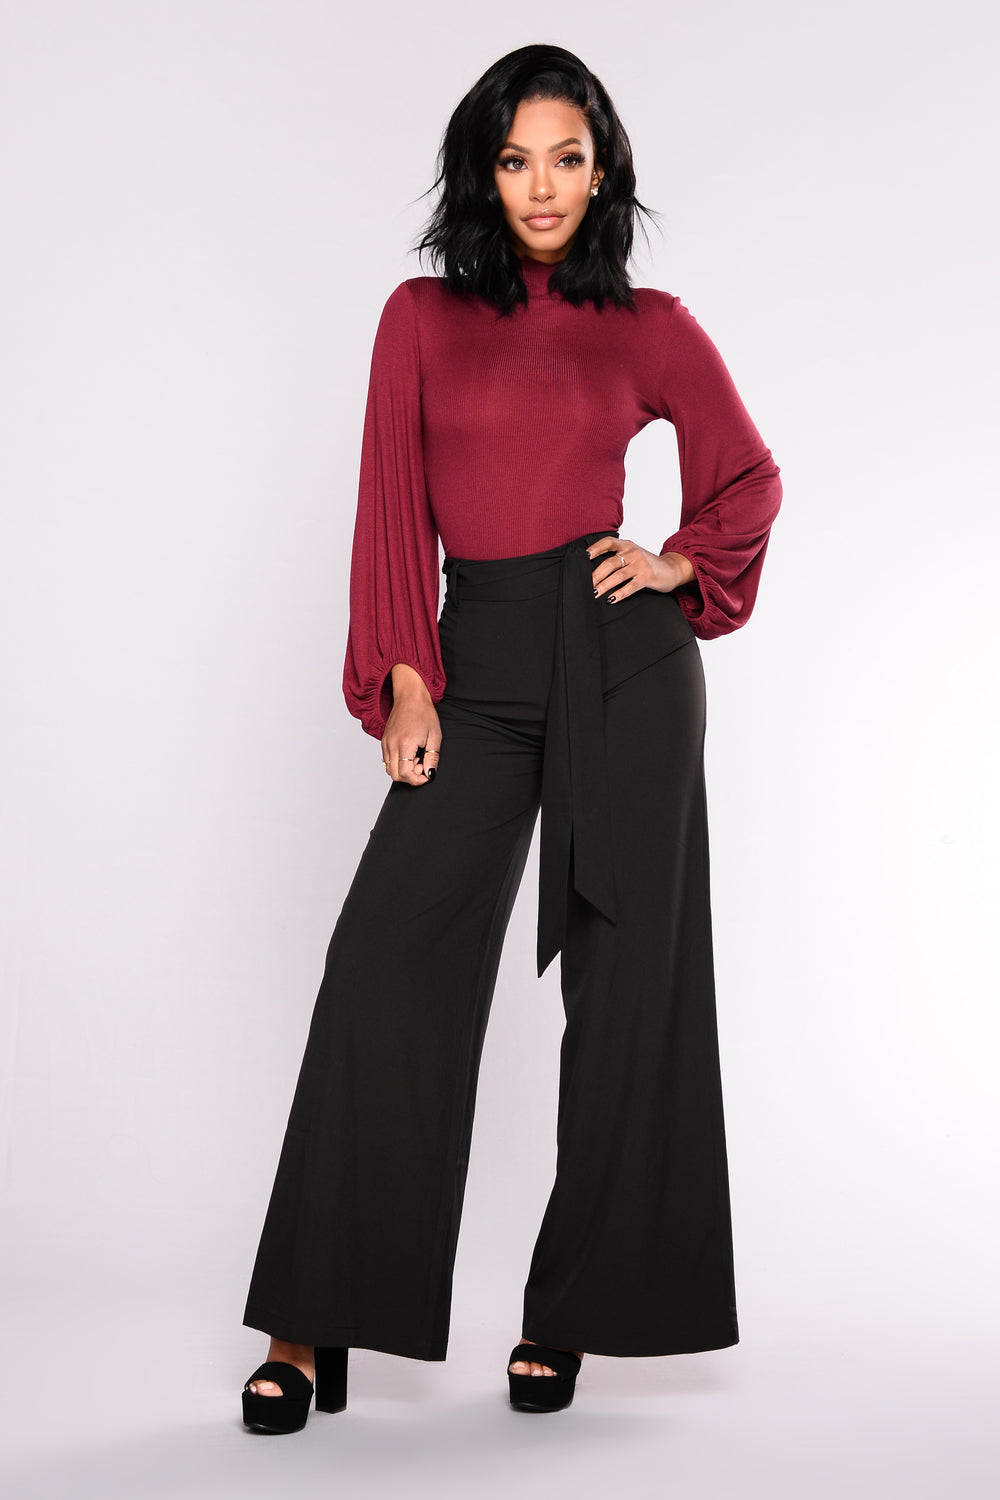 The Ruffle Effect Top - Wine